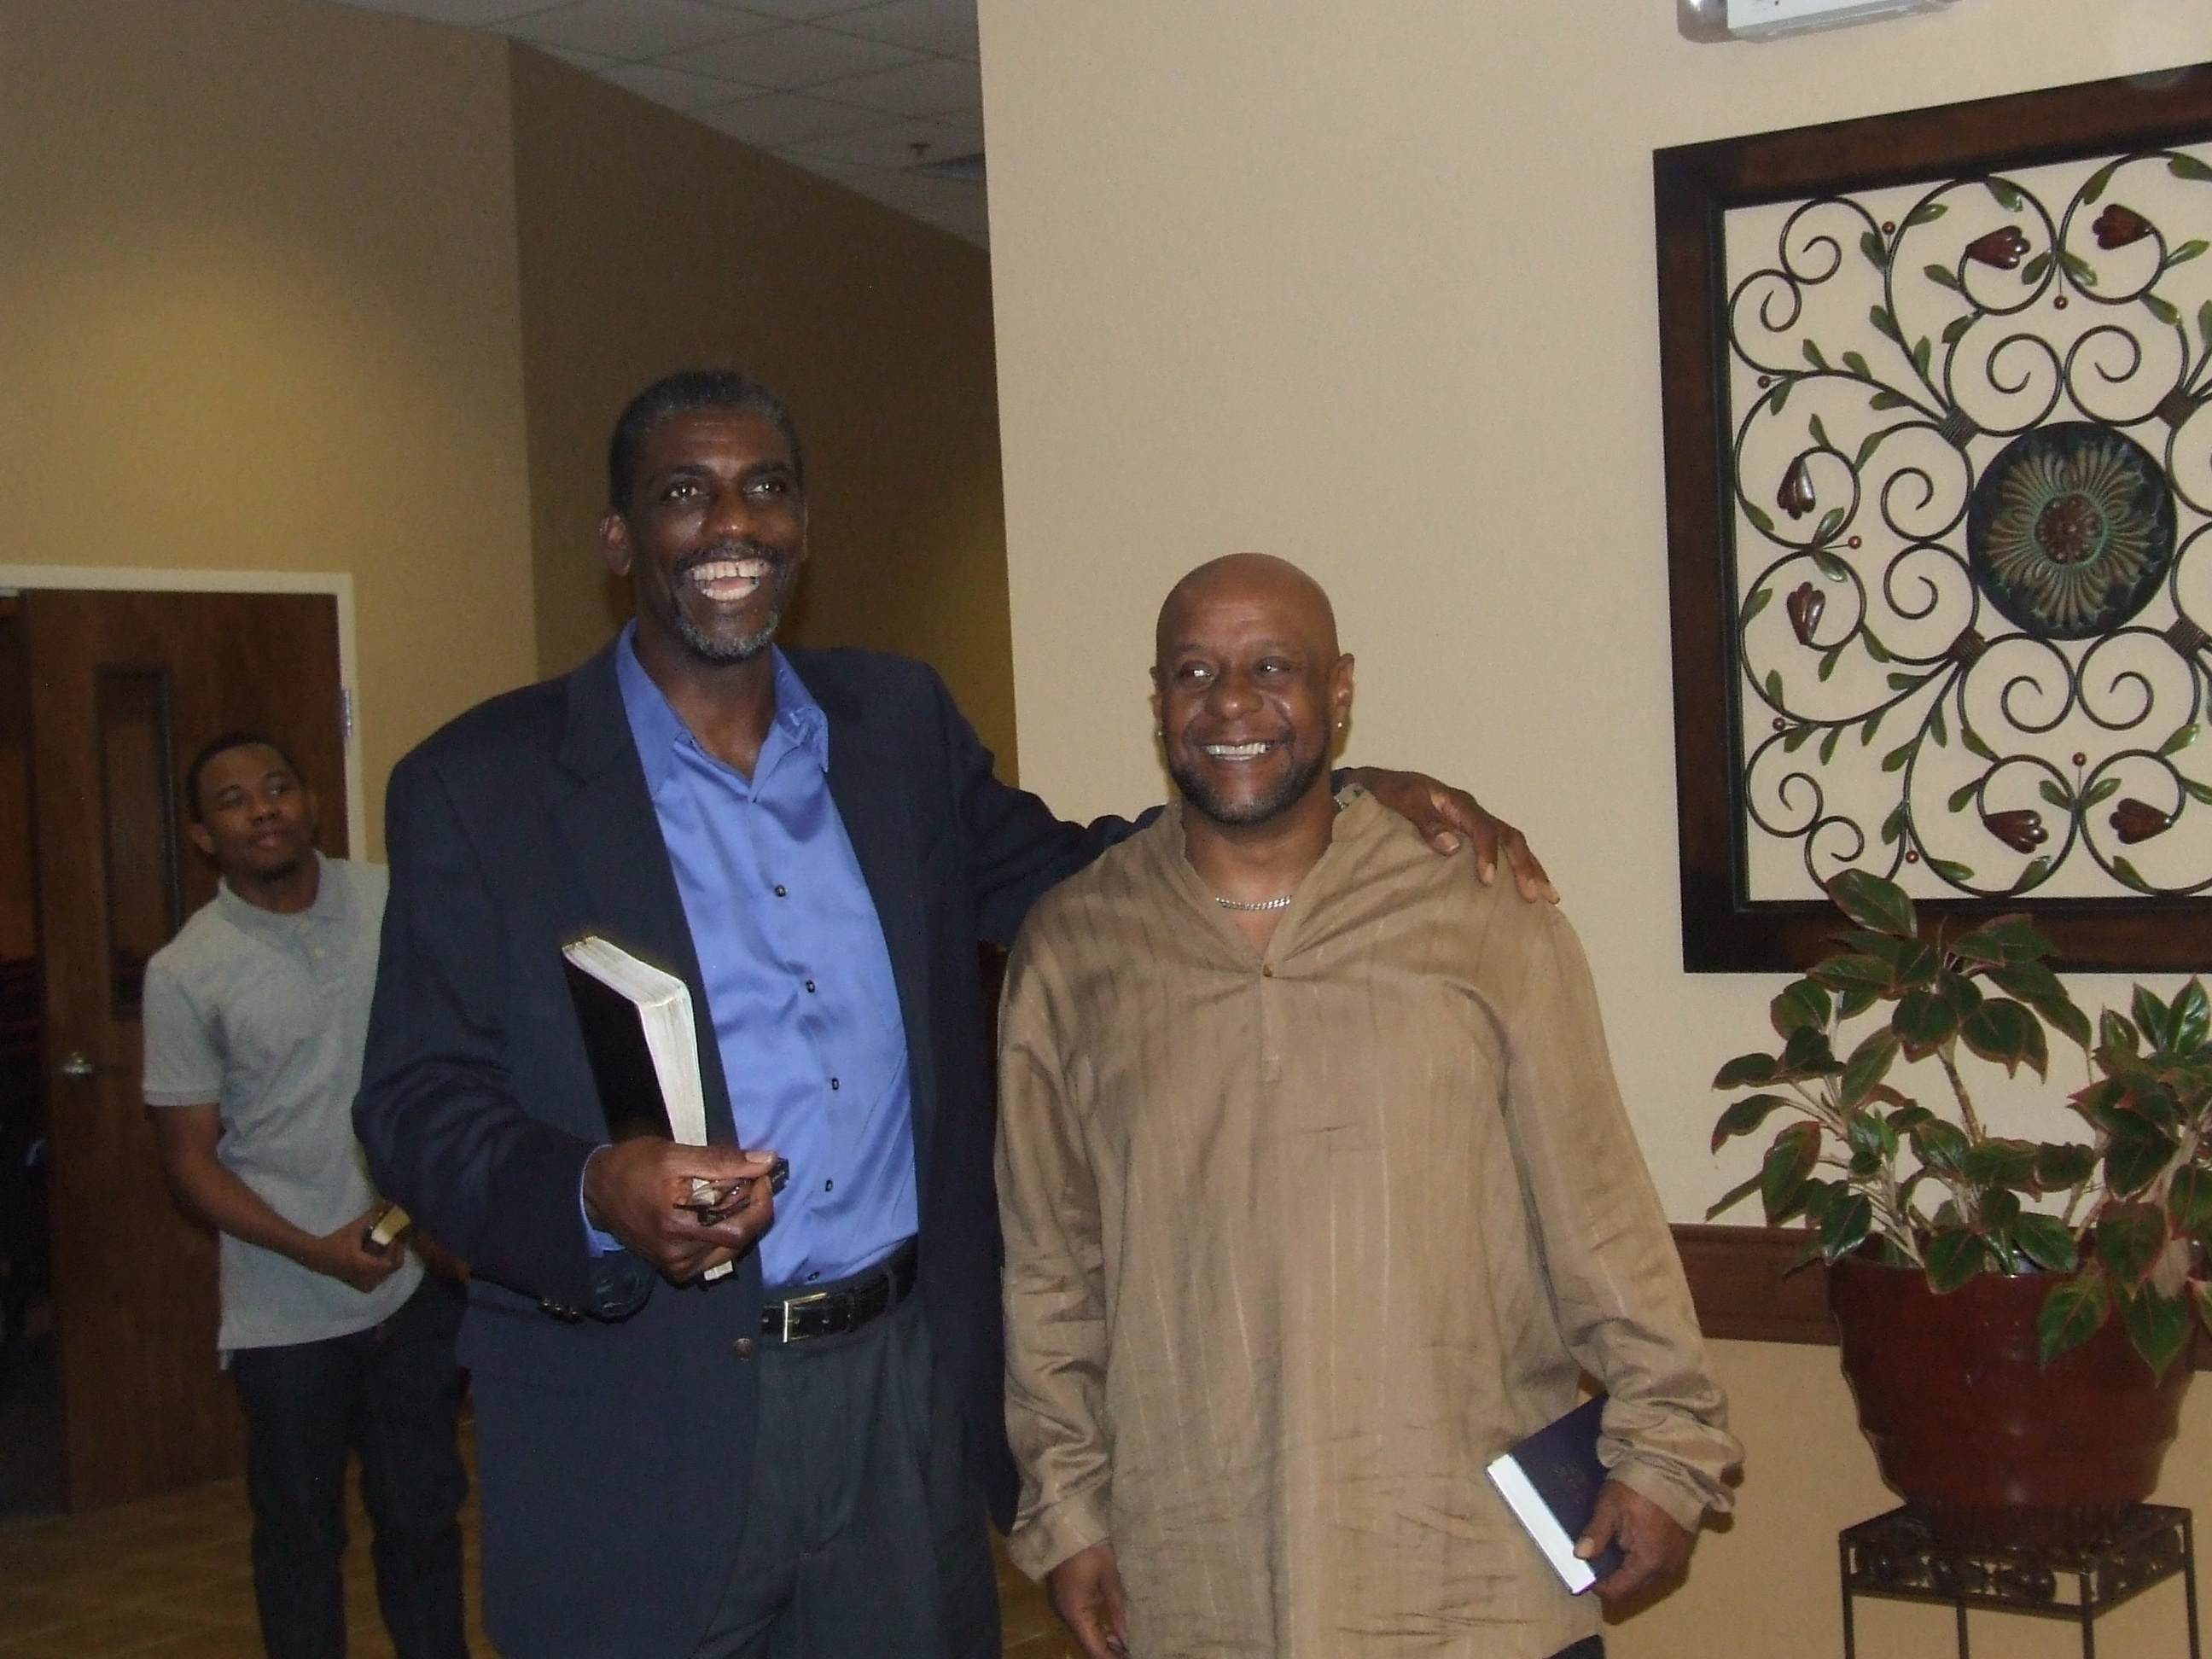 Pastor and people from the congregation